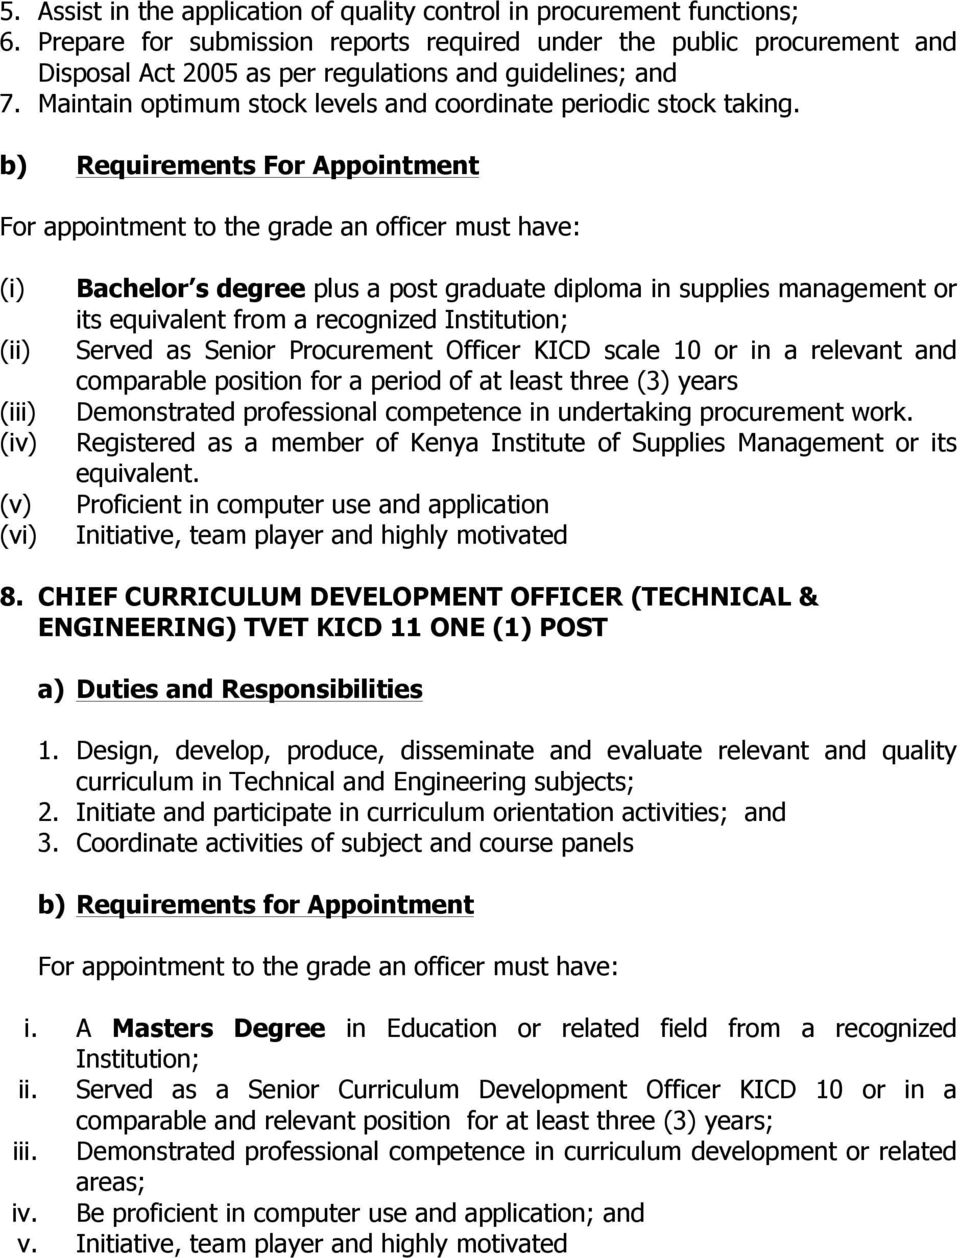 b) Requirements For Appointment For appointment to the grade an officer must have: (vi) Bachelor s degree plus a post graduate diploma in supplies management or its equivalent from a recognized